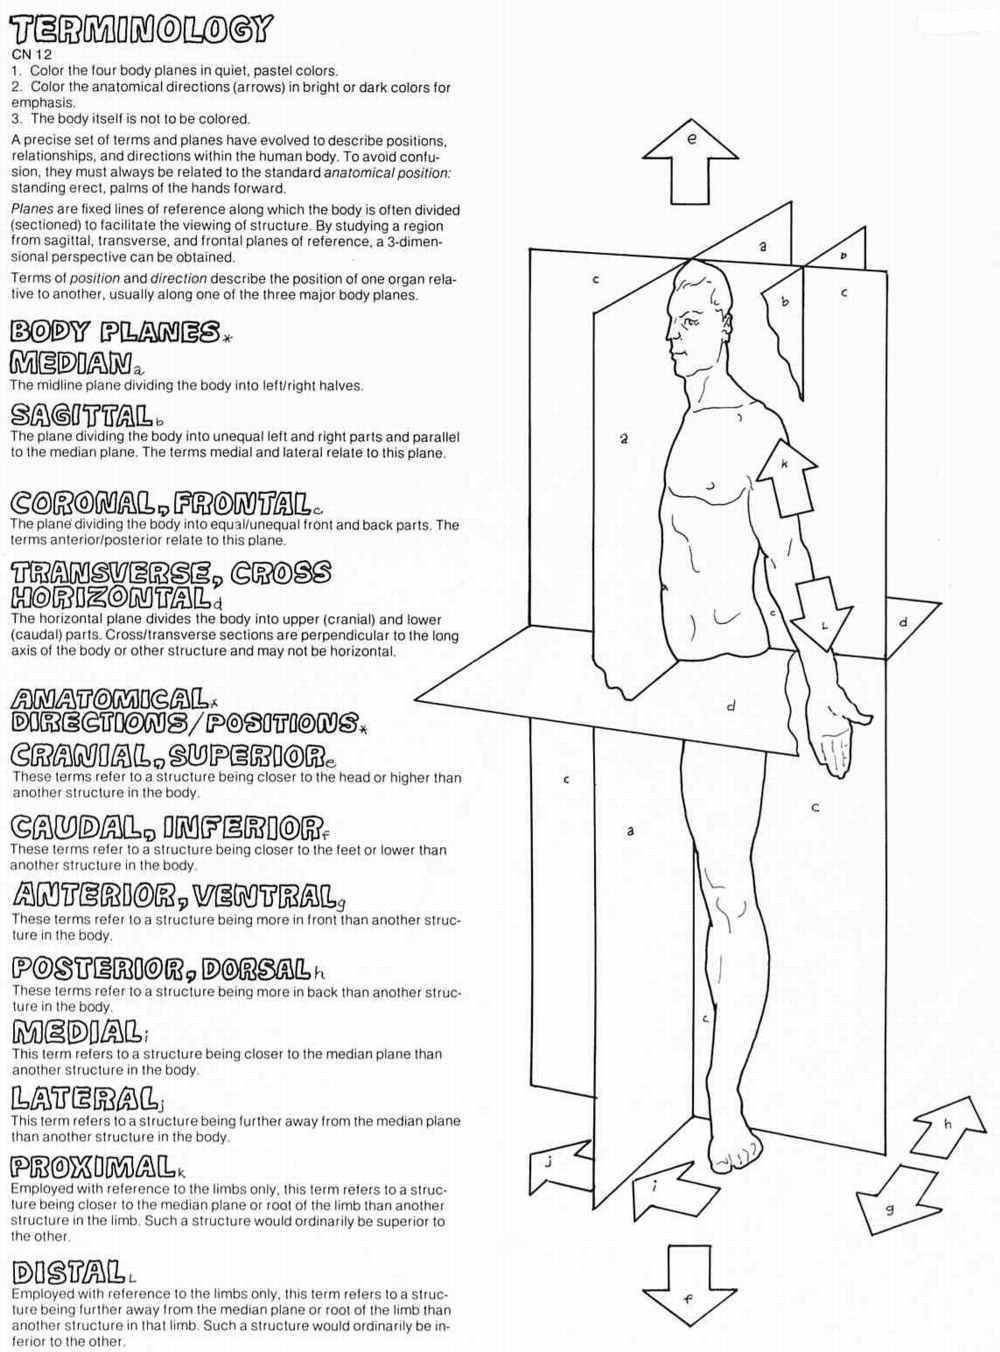 Anatomical Directions Worksheet Davezan daddabfafe Anatomical Directions Worksheet